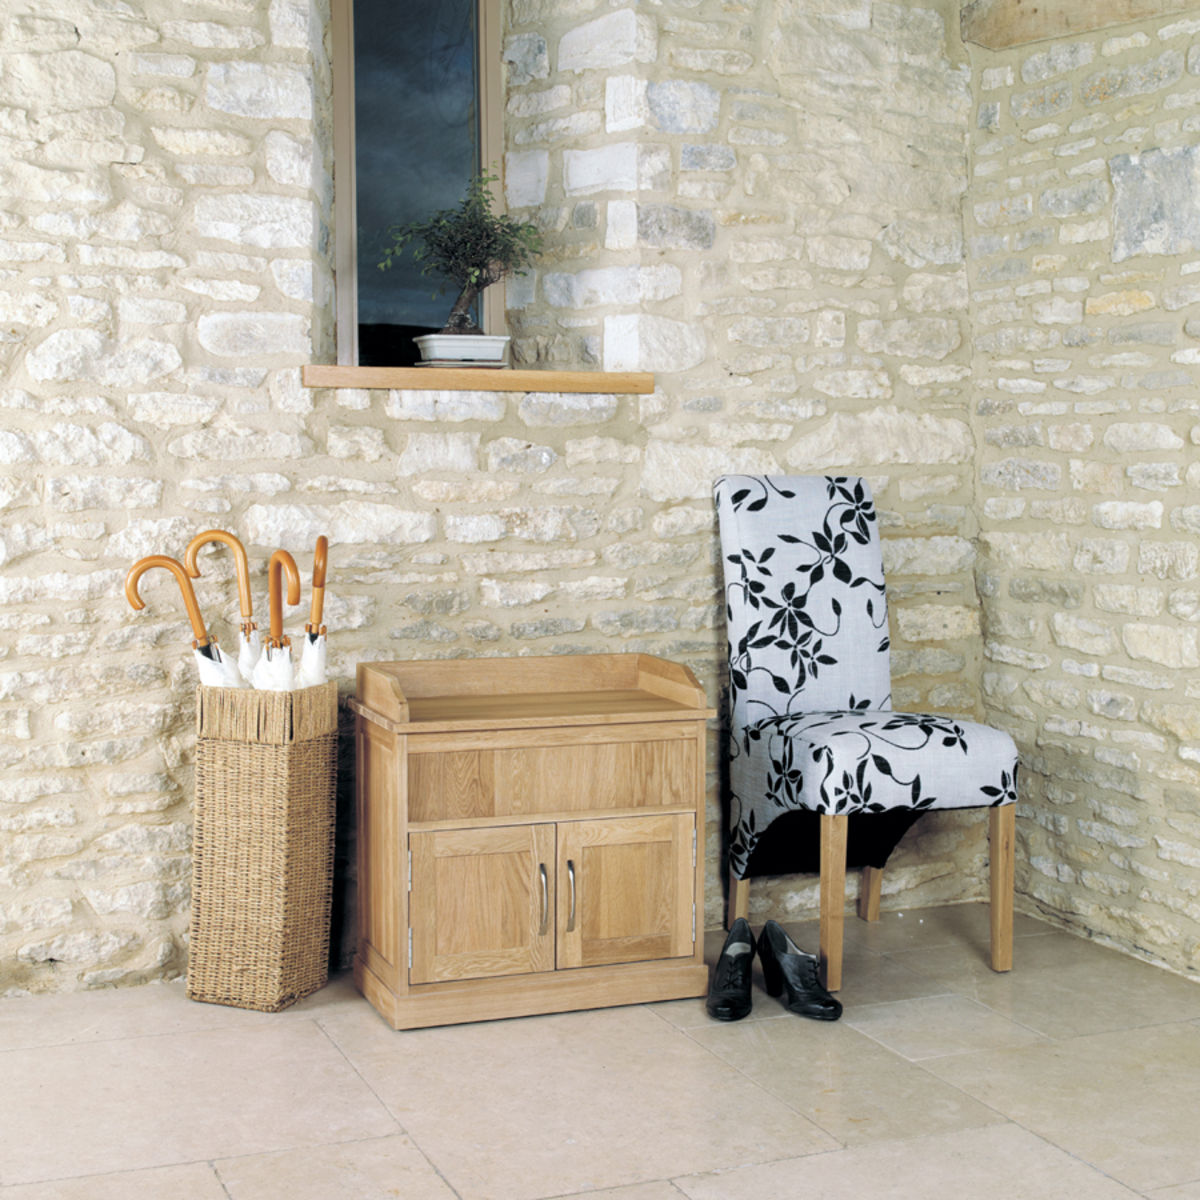 Mobel Solid Oak Furniture Shoe Storage Hallway Bench: Mobel Oak Shoe Bench With Hidden Storage Was £350.00 Now £